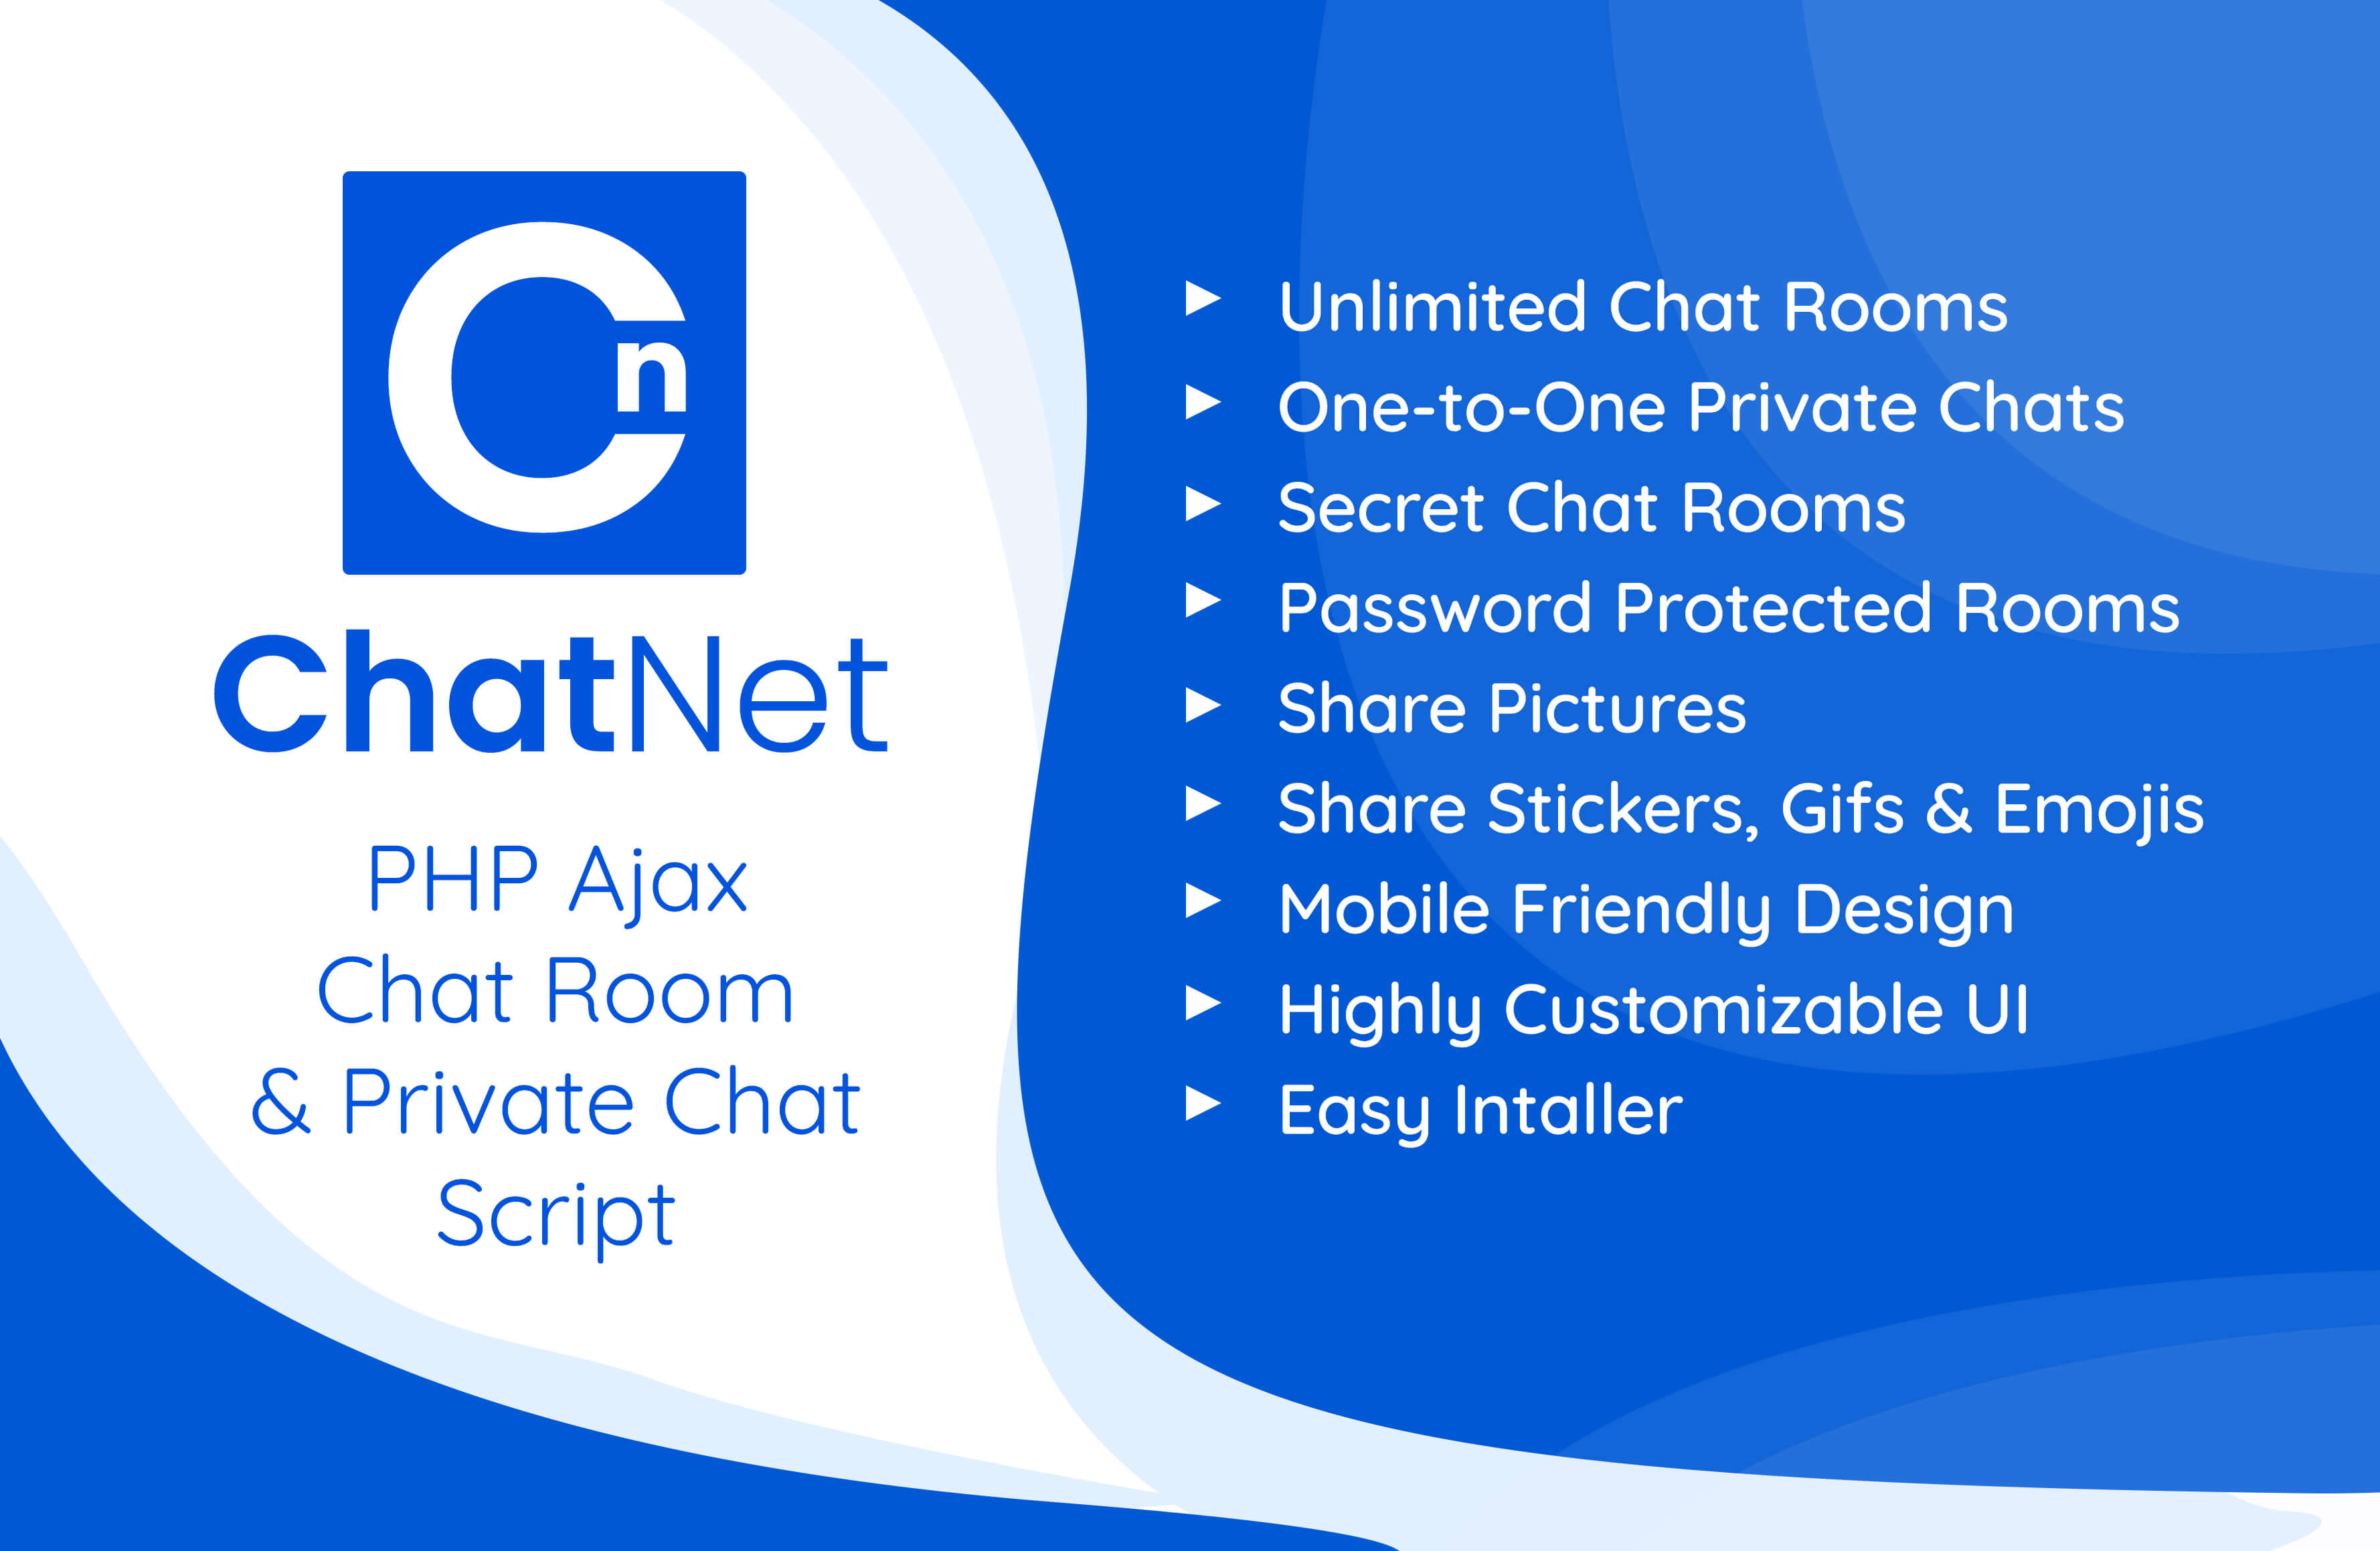 ChatNet - PHP Ajax Chat Room & Private Chat Script - 2